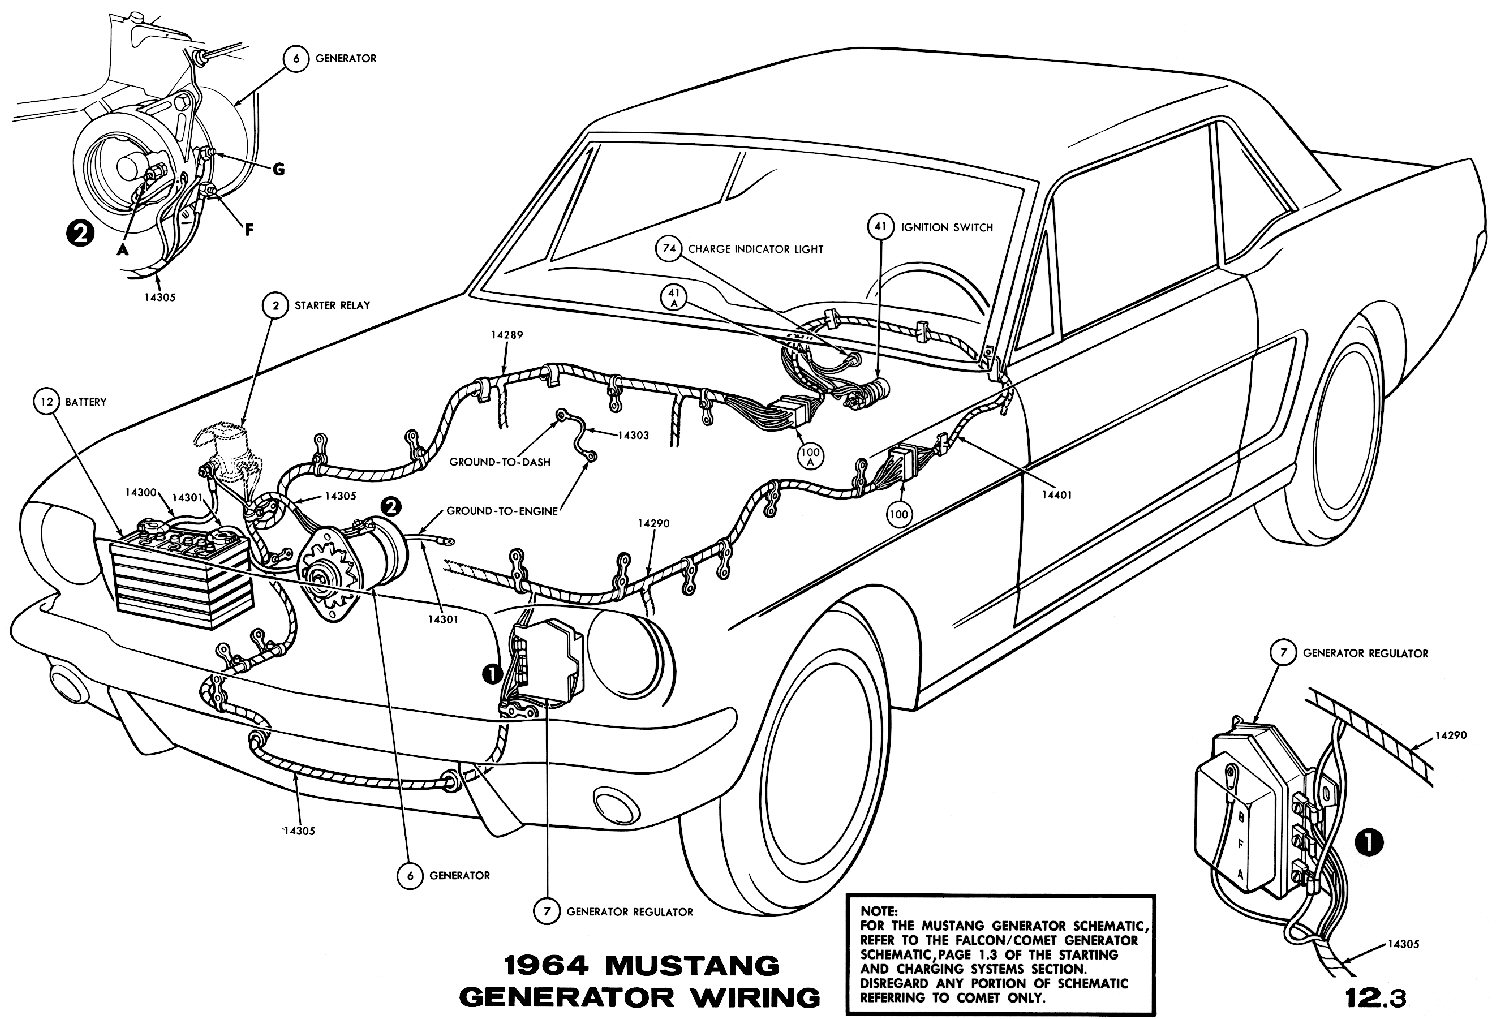 Mustang Gauge Feed Wiring Diagram Schematic